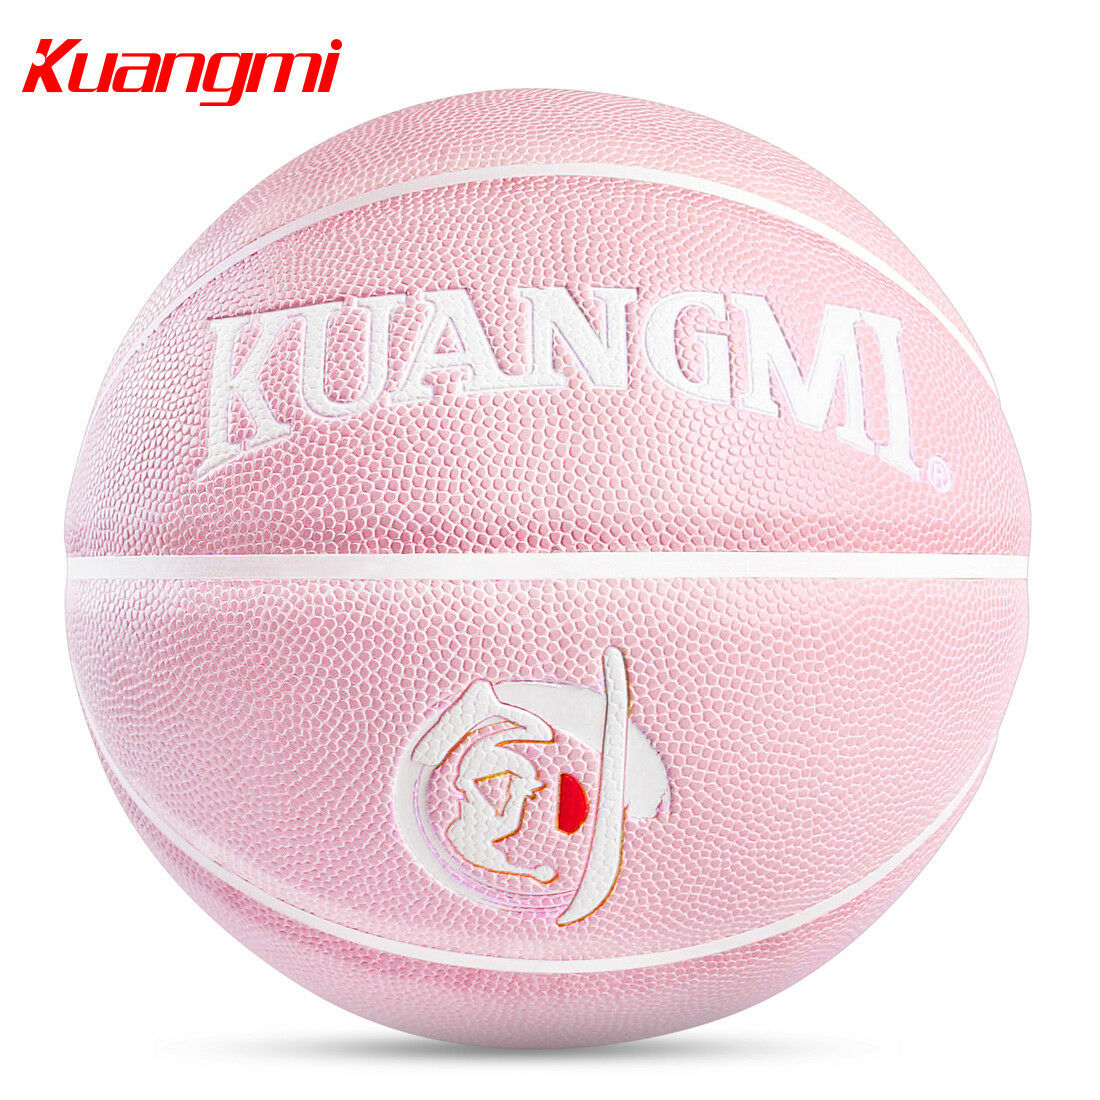 Kuangmi pink basketball Official Size 6 28.5 Training Indoor Outdoor PU Leather